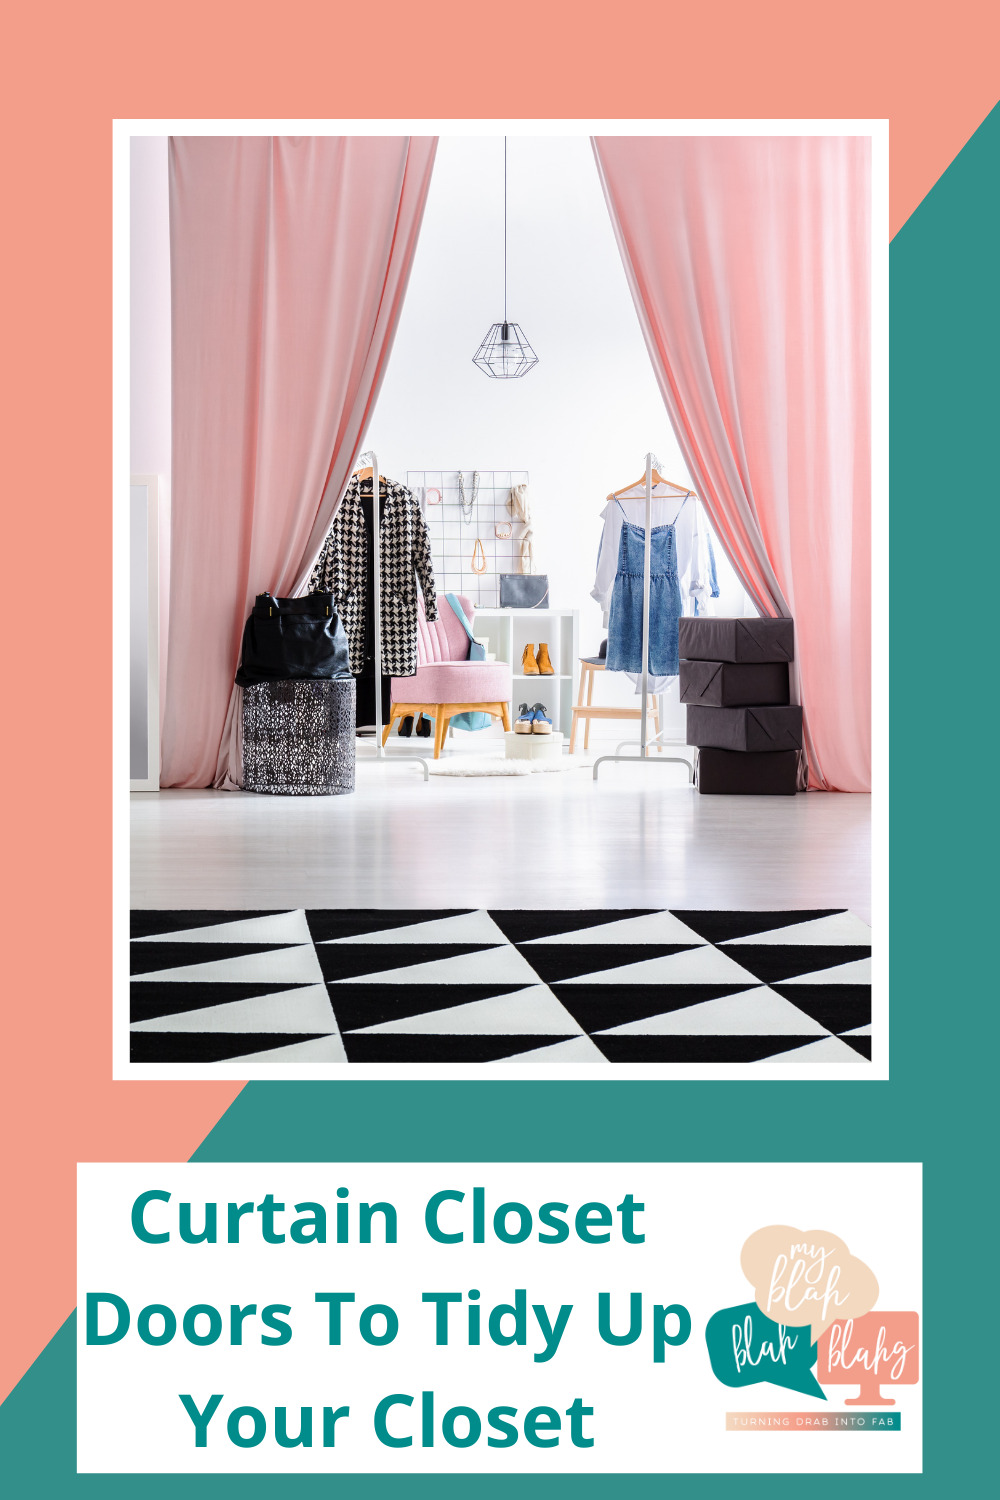 Myblahblahblahg.com has an eclectic compilation of tips and hacks to make all parts of your life easier. Find loads of ideas for creative and effective organization solutions. Learn how you can tidy up your closet space by concealing it with a curtain!